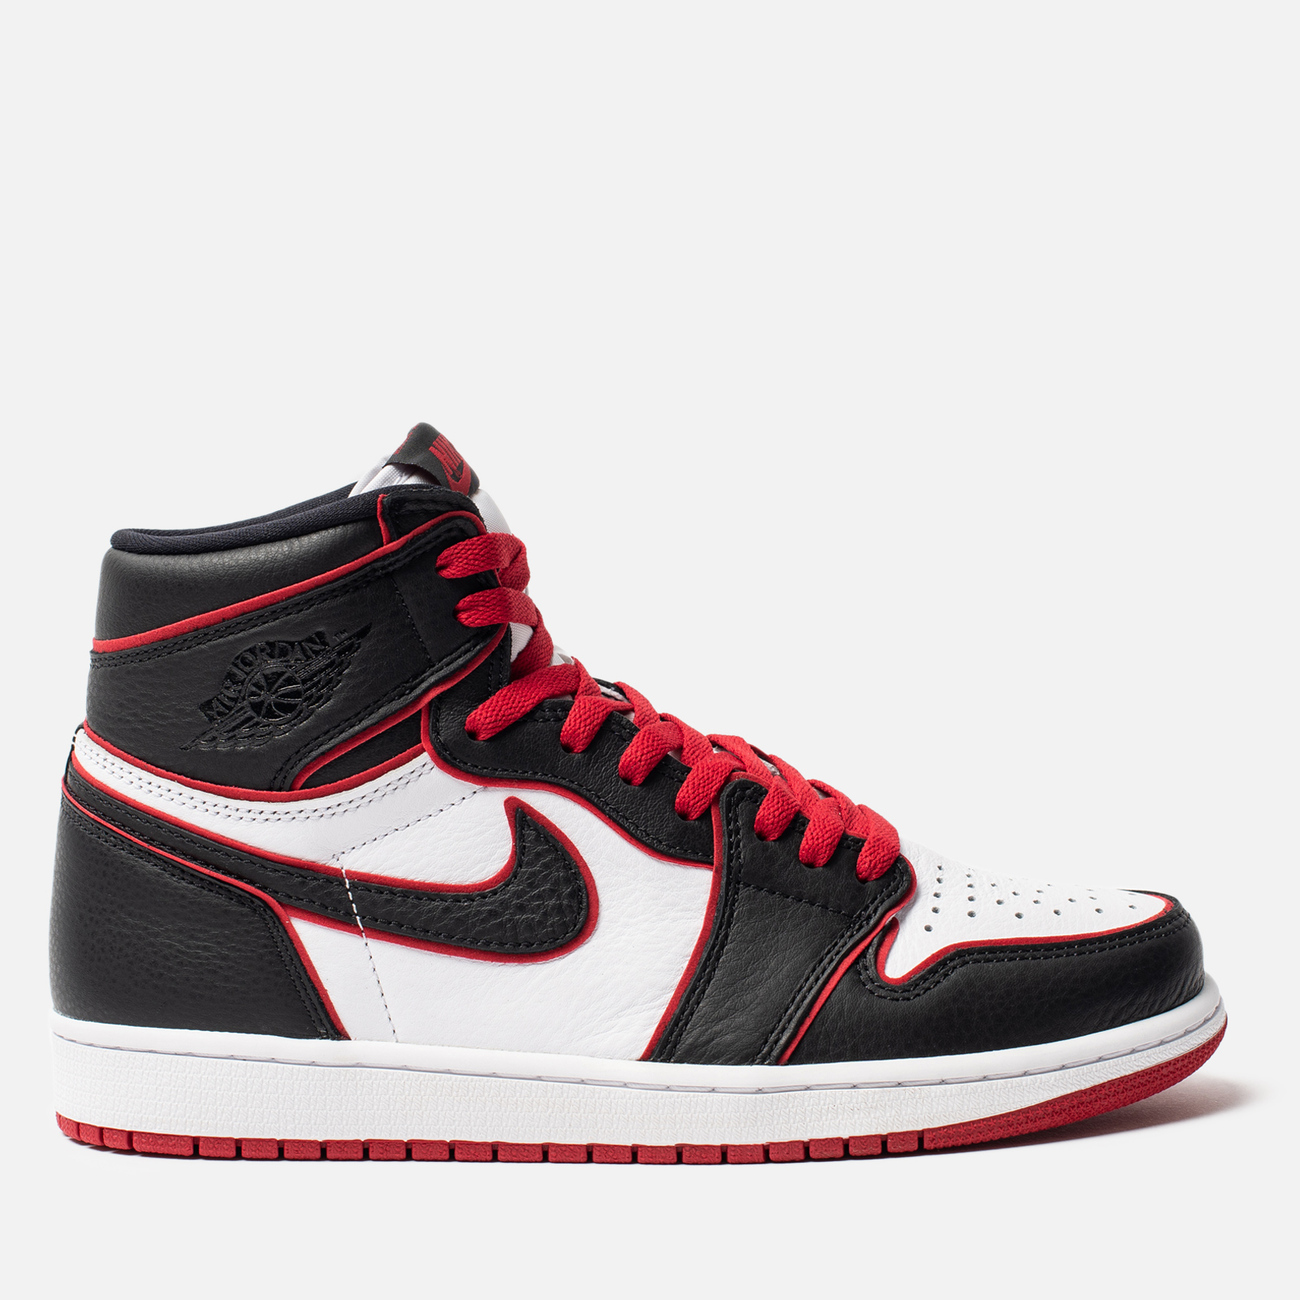 Мужские кроссовки Jordan Air Jordan 1 Retro High OG Bloodline Black/Gym Red/White